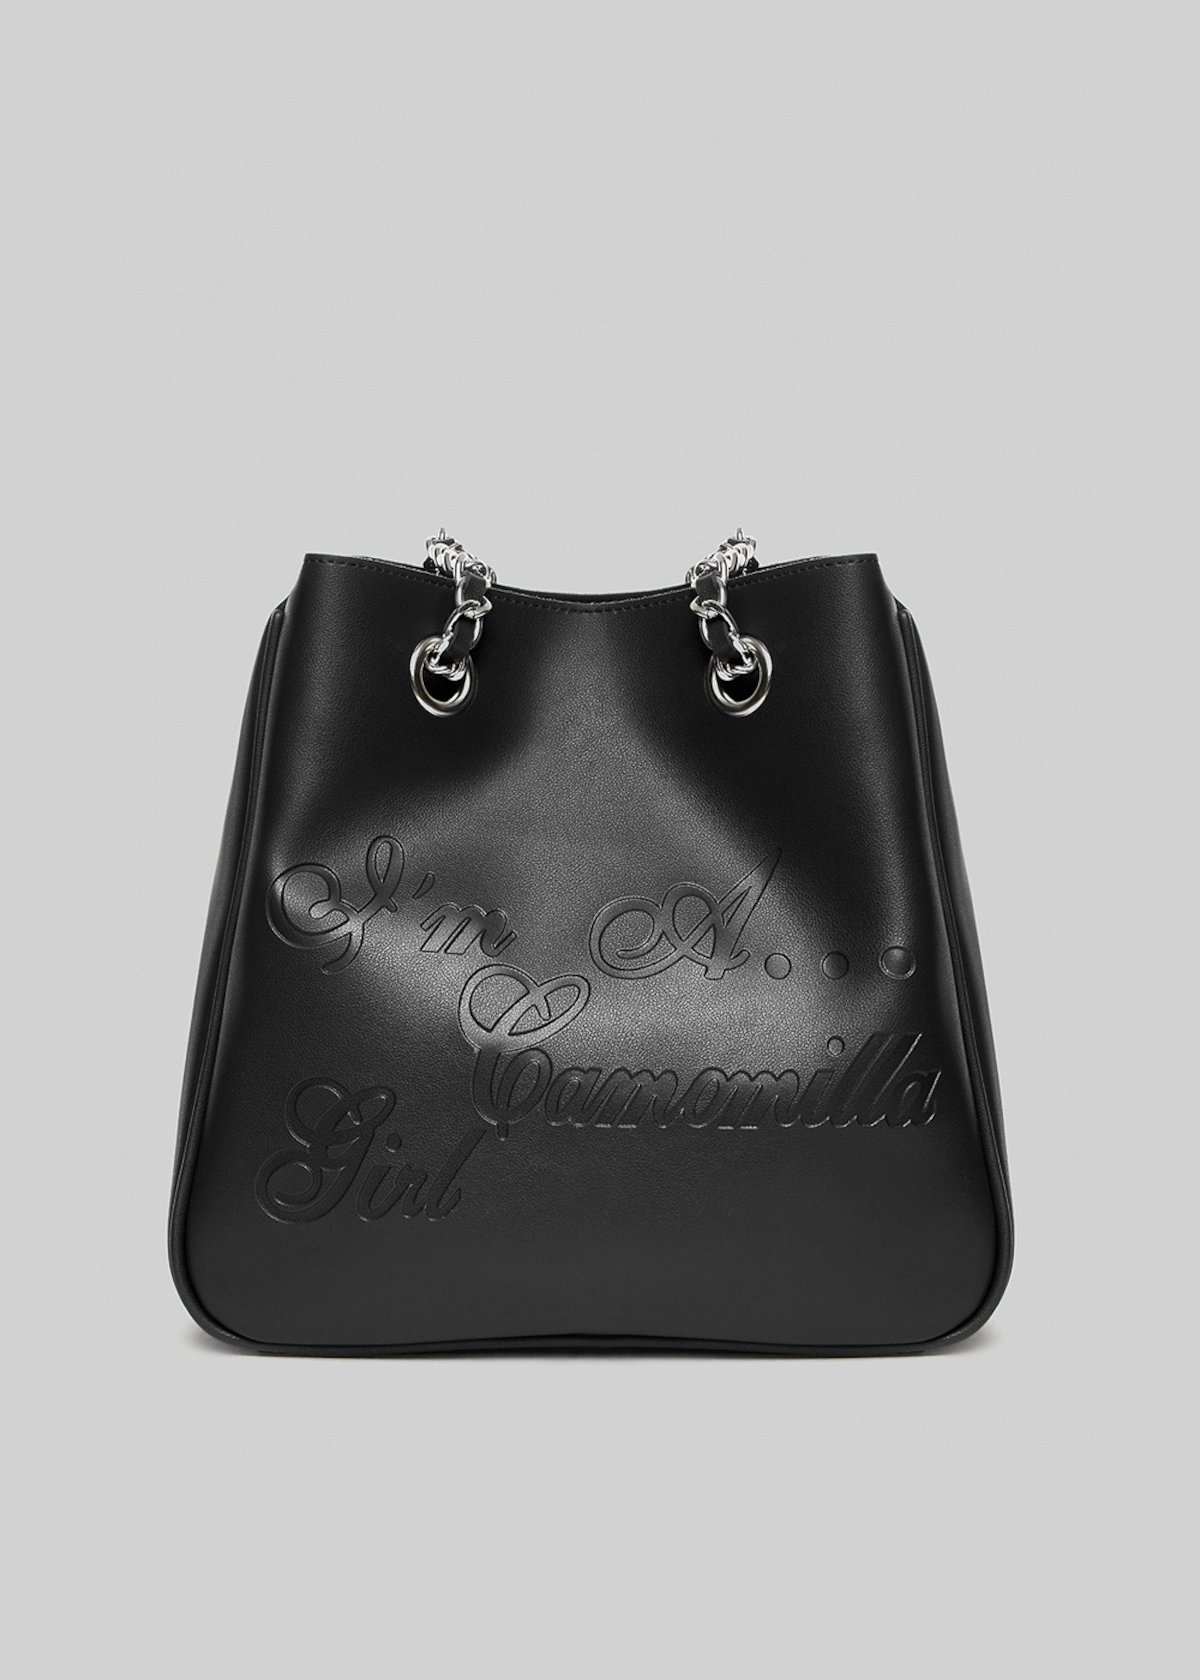 Shopping bag Mincamunl in ecopelle con manici a catena - Black